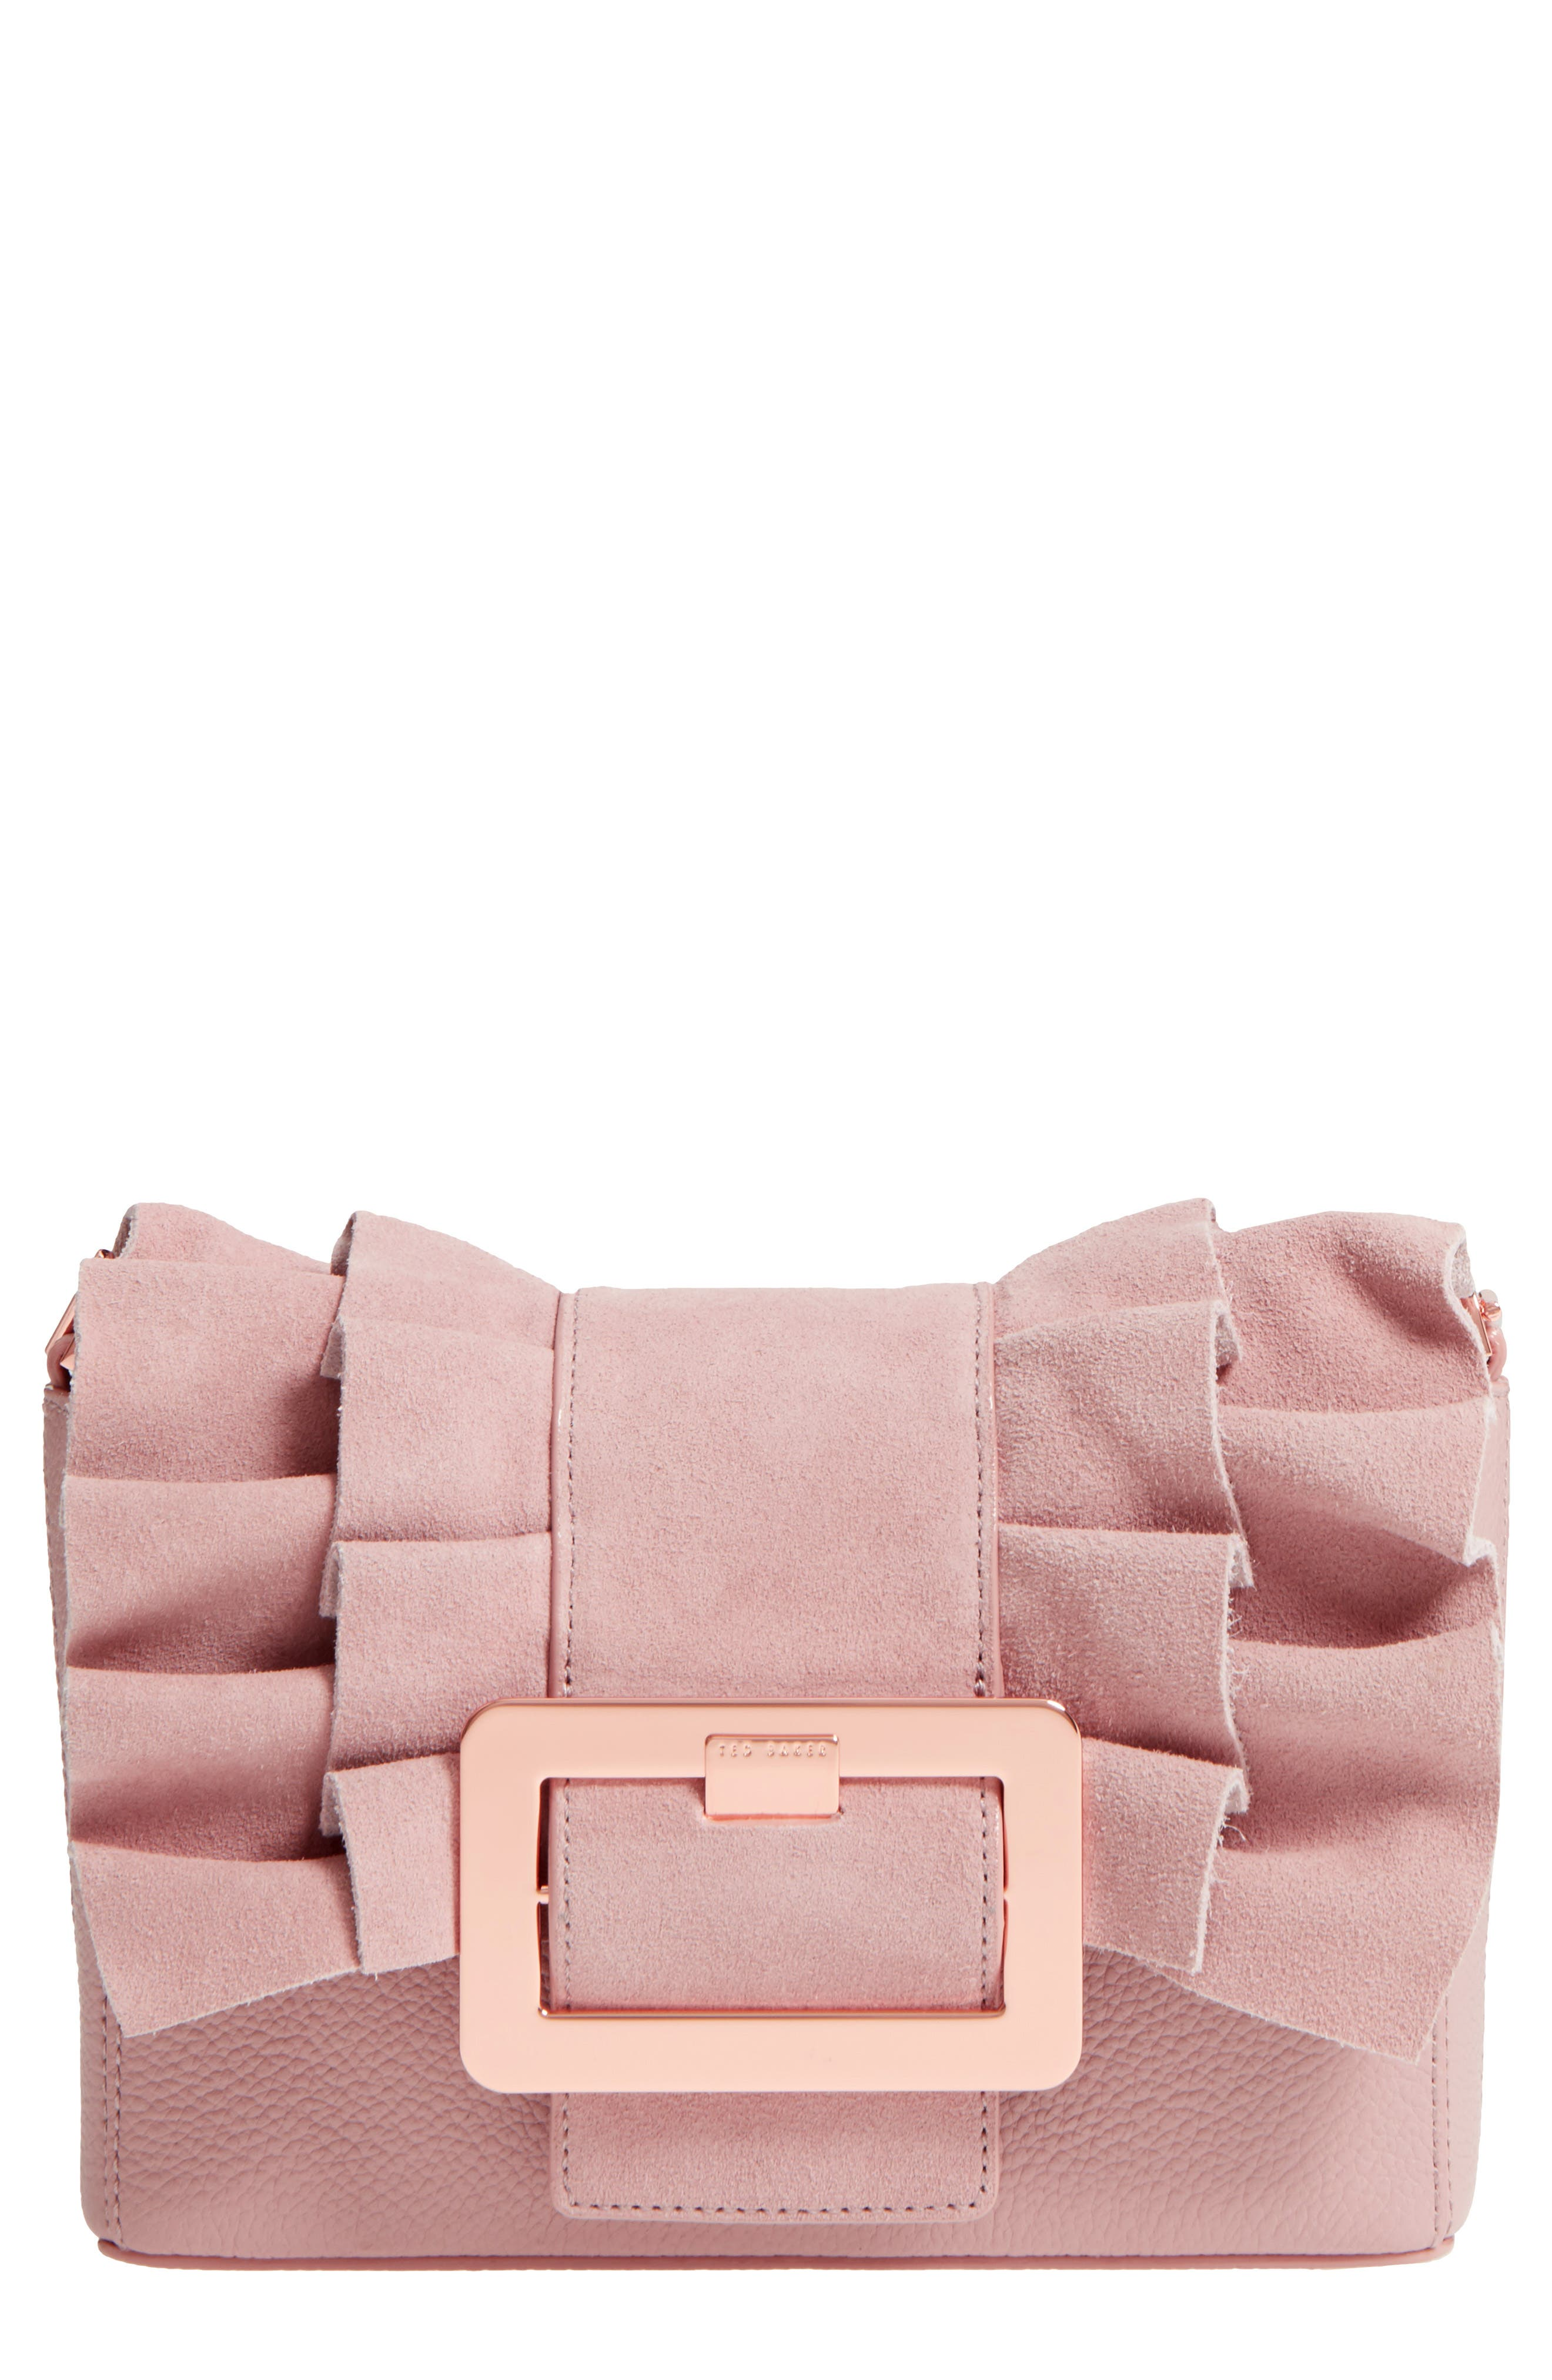 Nerinee Bow Buckle Clutch,                             Main thumbnail 3, color,